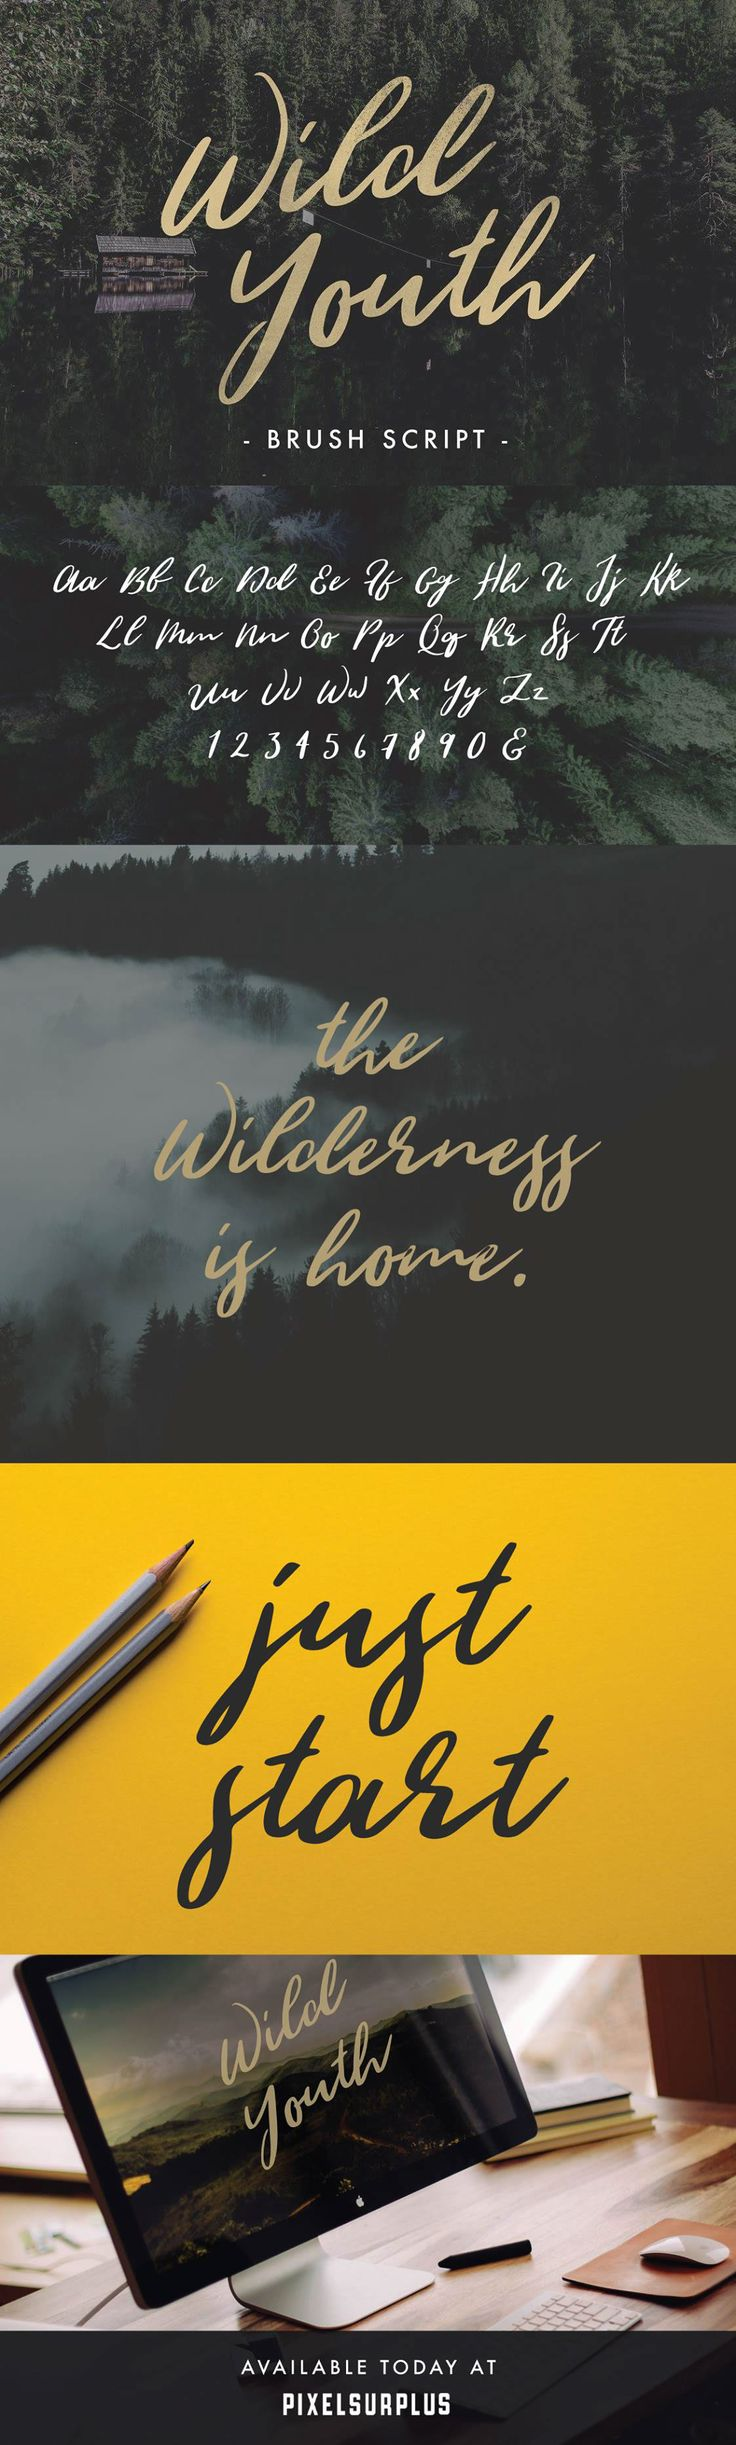 WILD YOUTH - FREE FONT on Behance